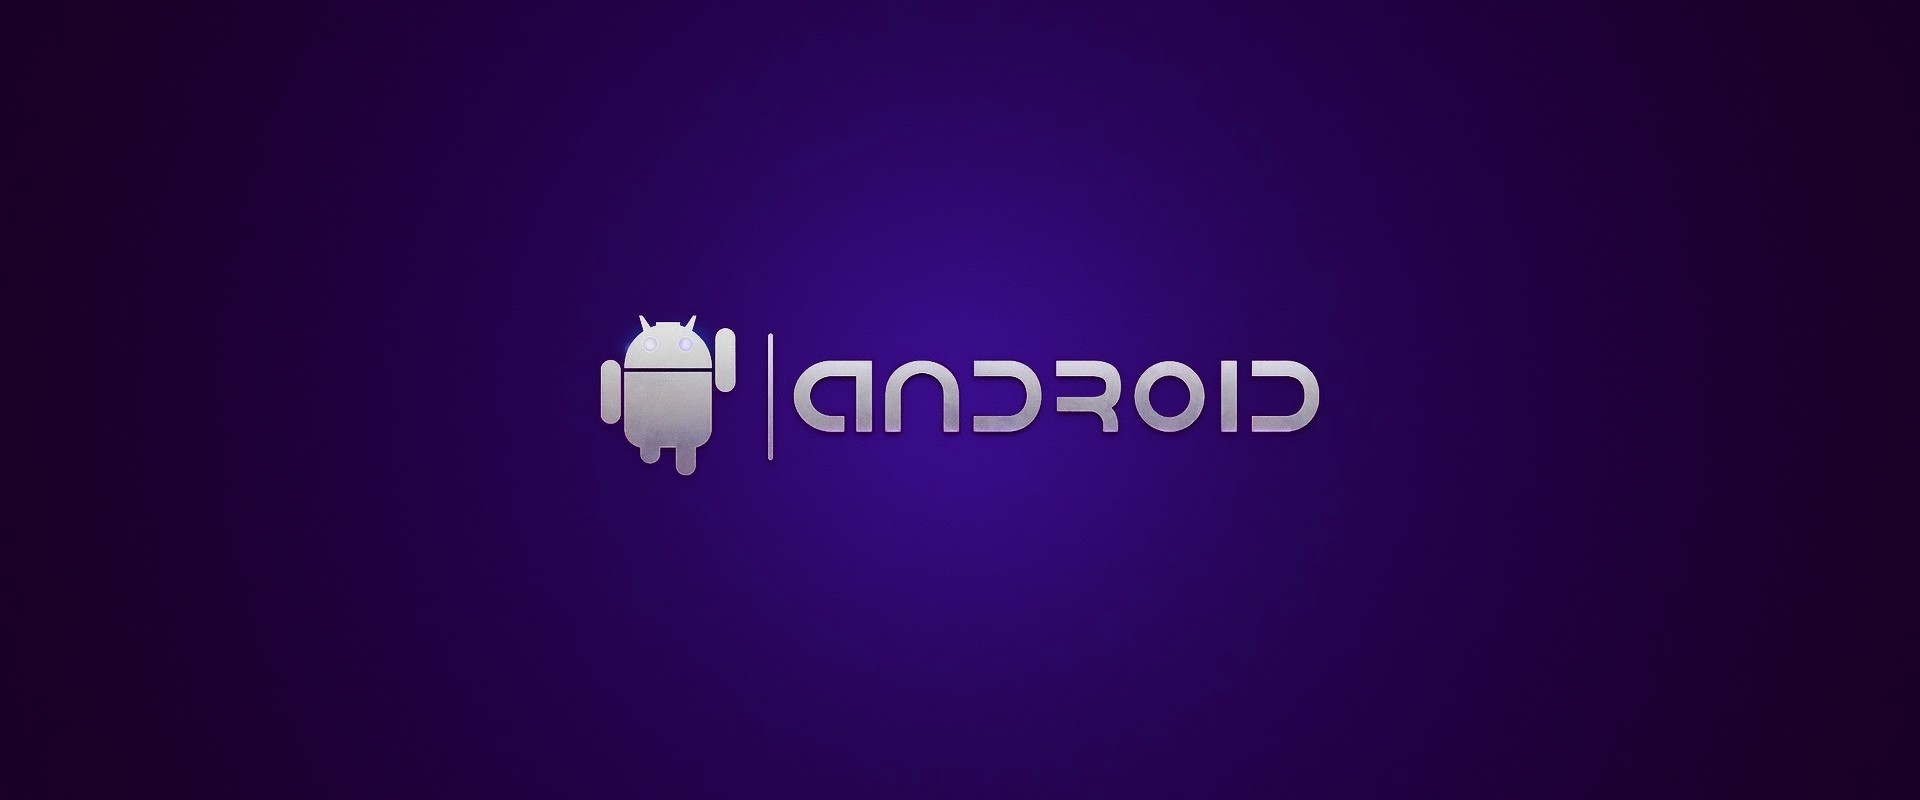 showbox apk for android 4.2.2